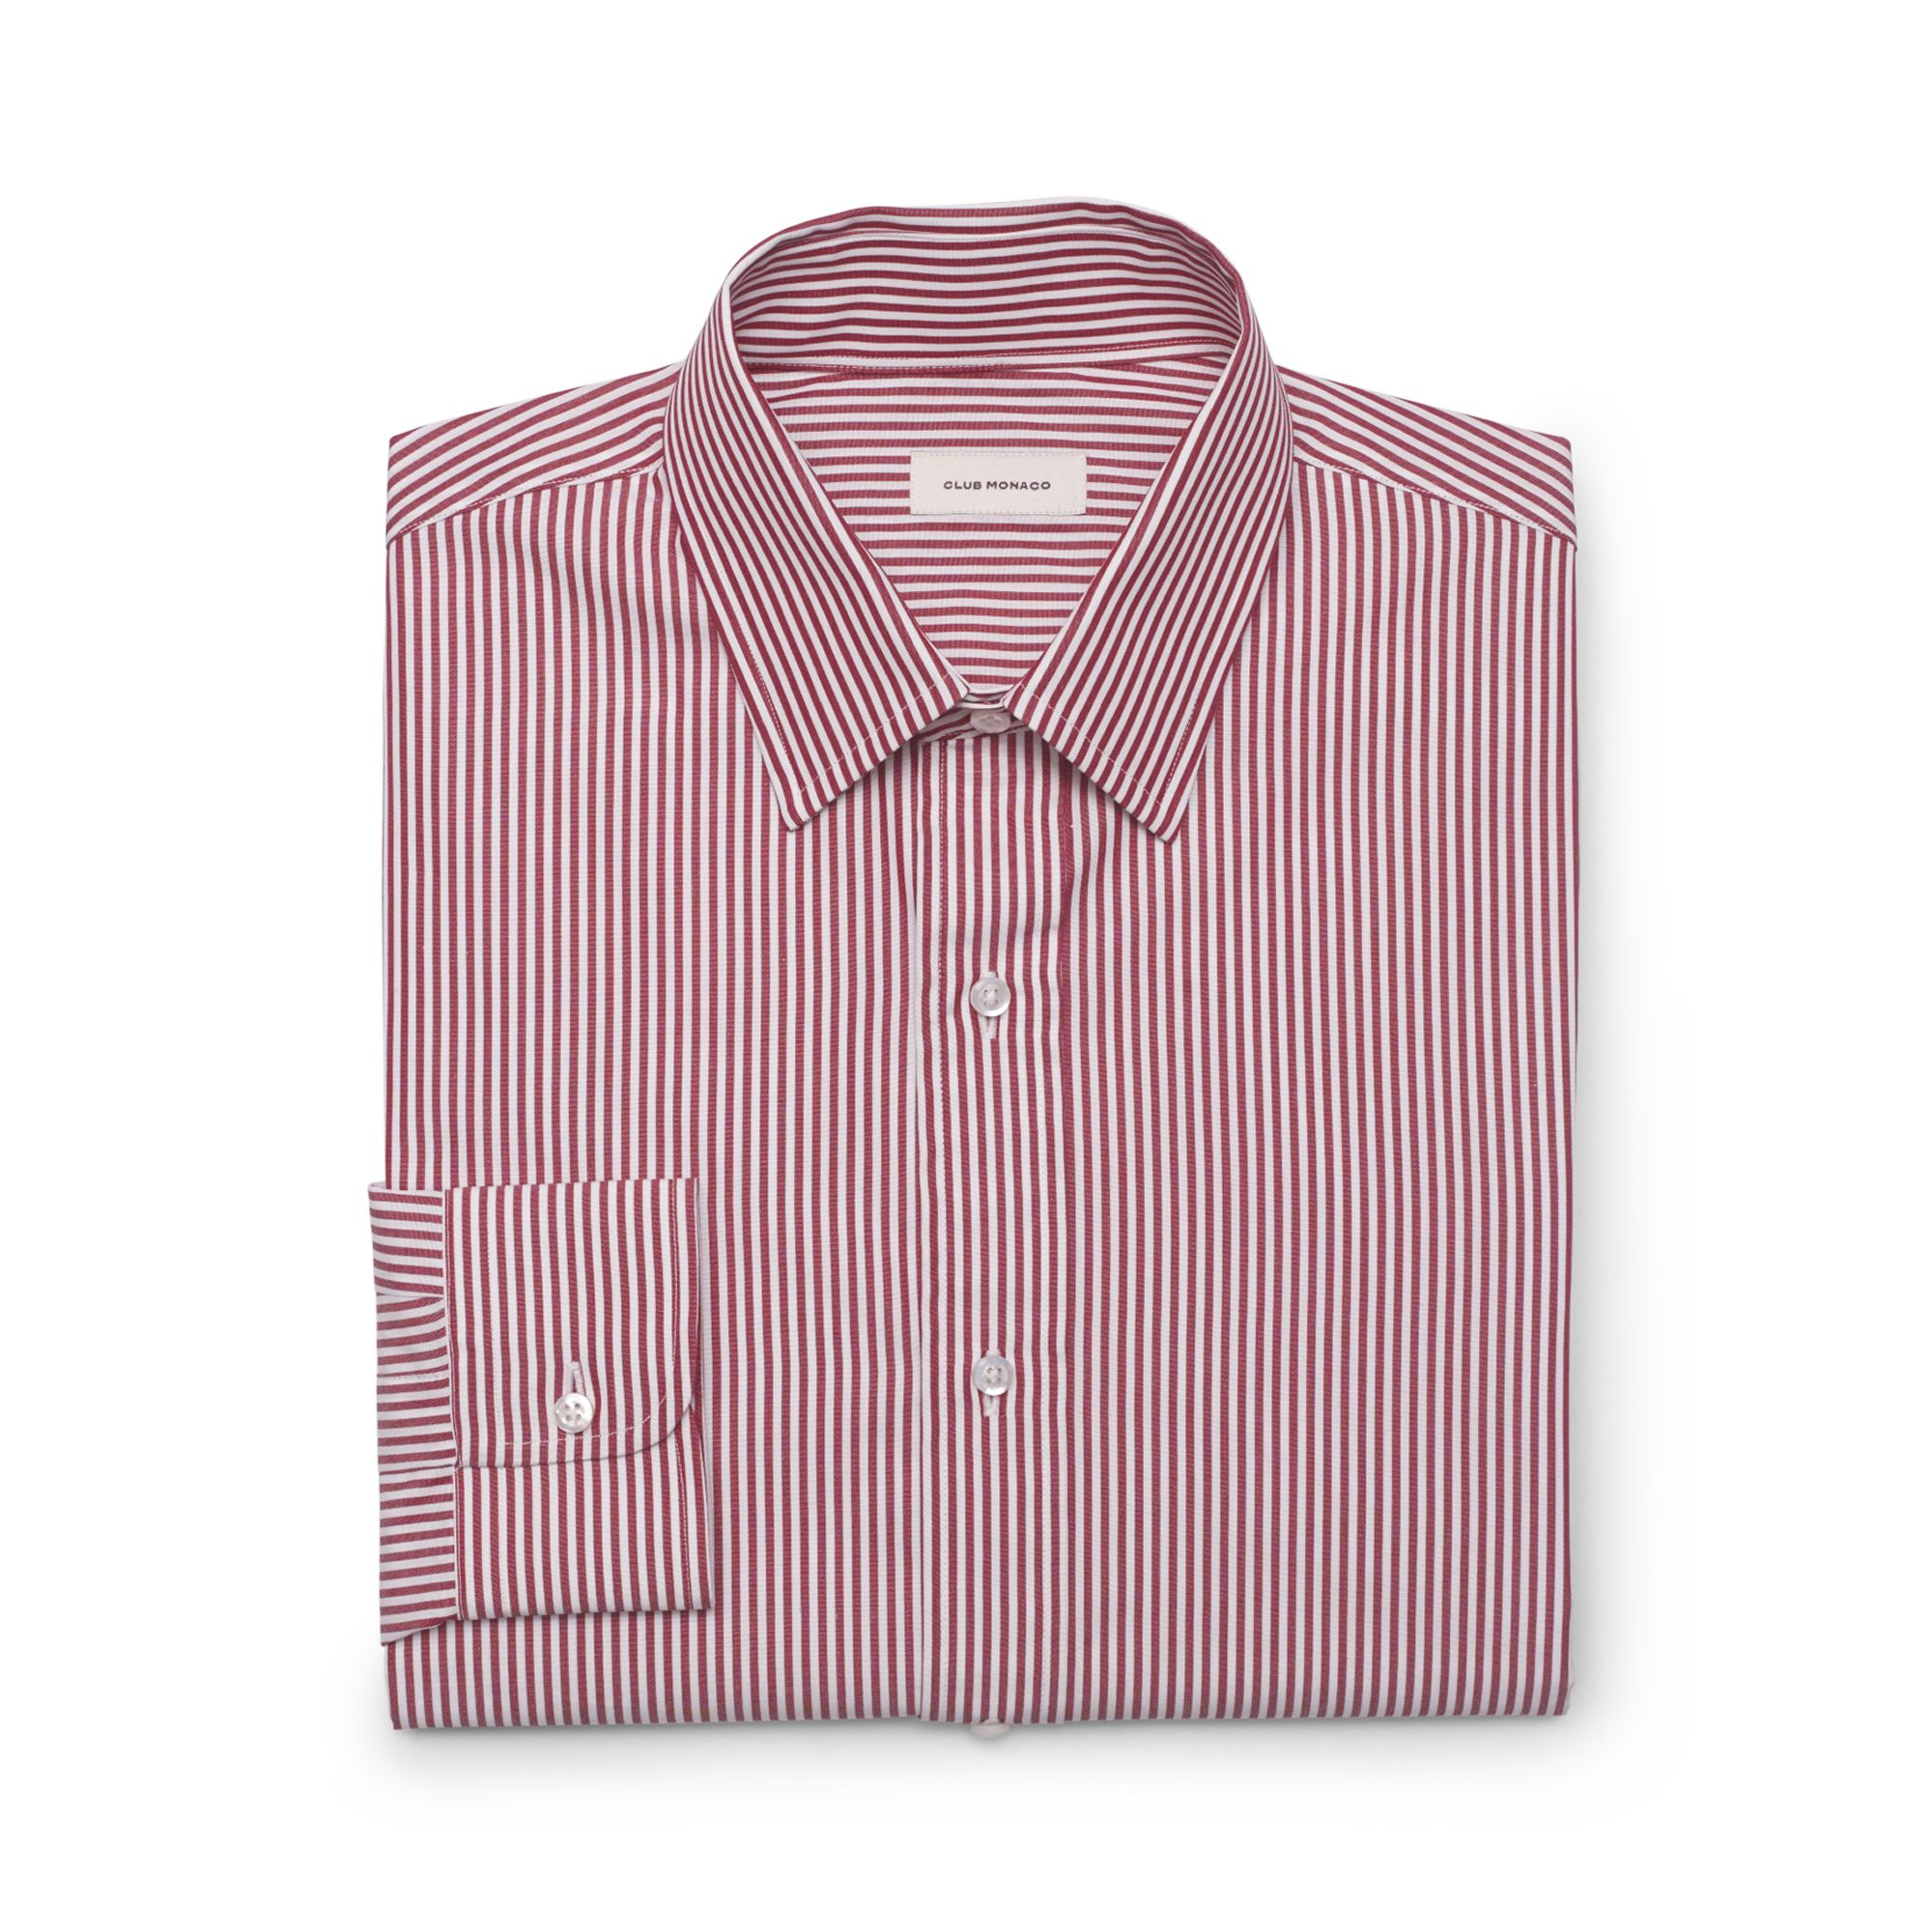 club monaco made in the usa dress shirt in purple for men